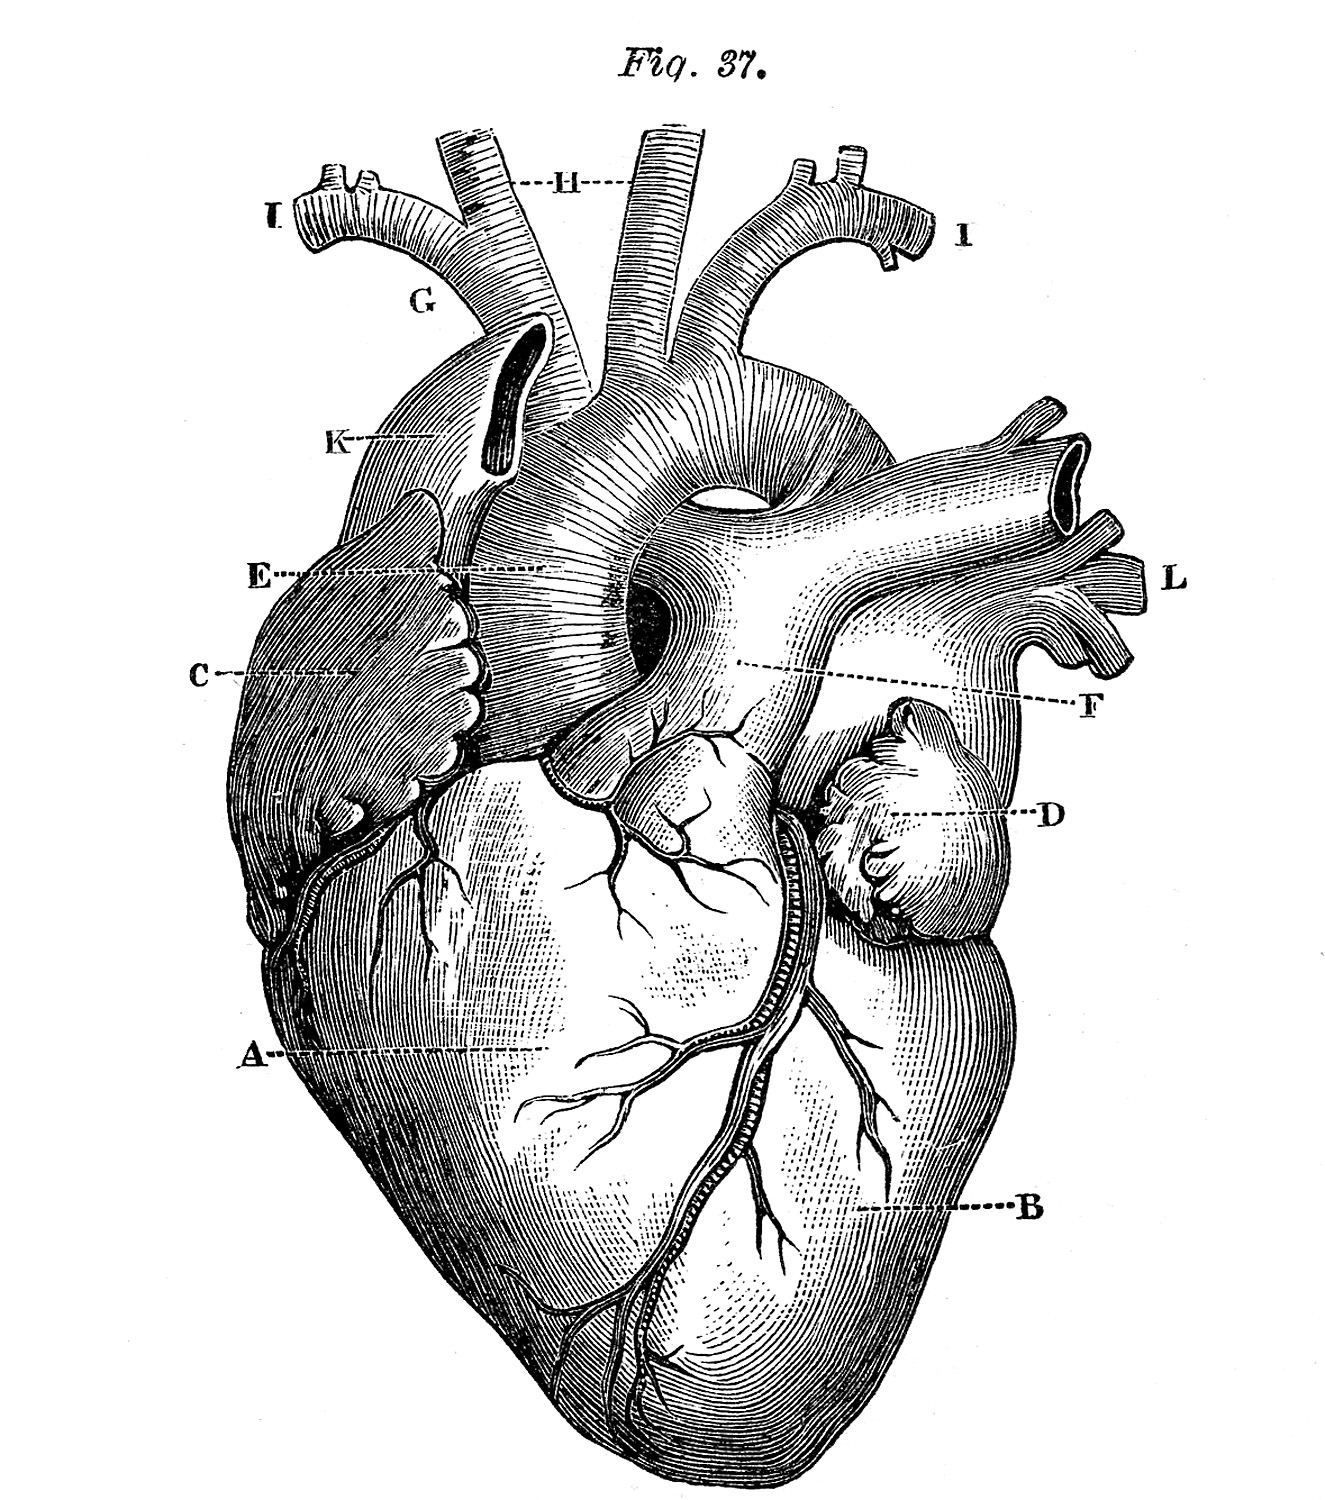 royalty free images - anatomical heart - vintage - the graphics fairy, Human body